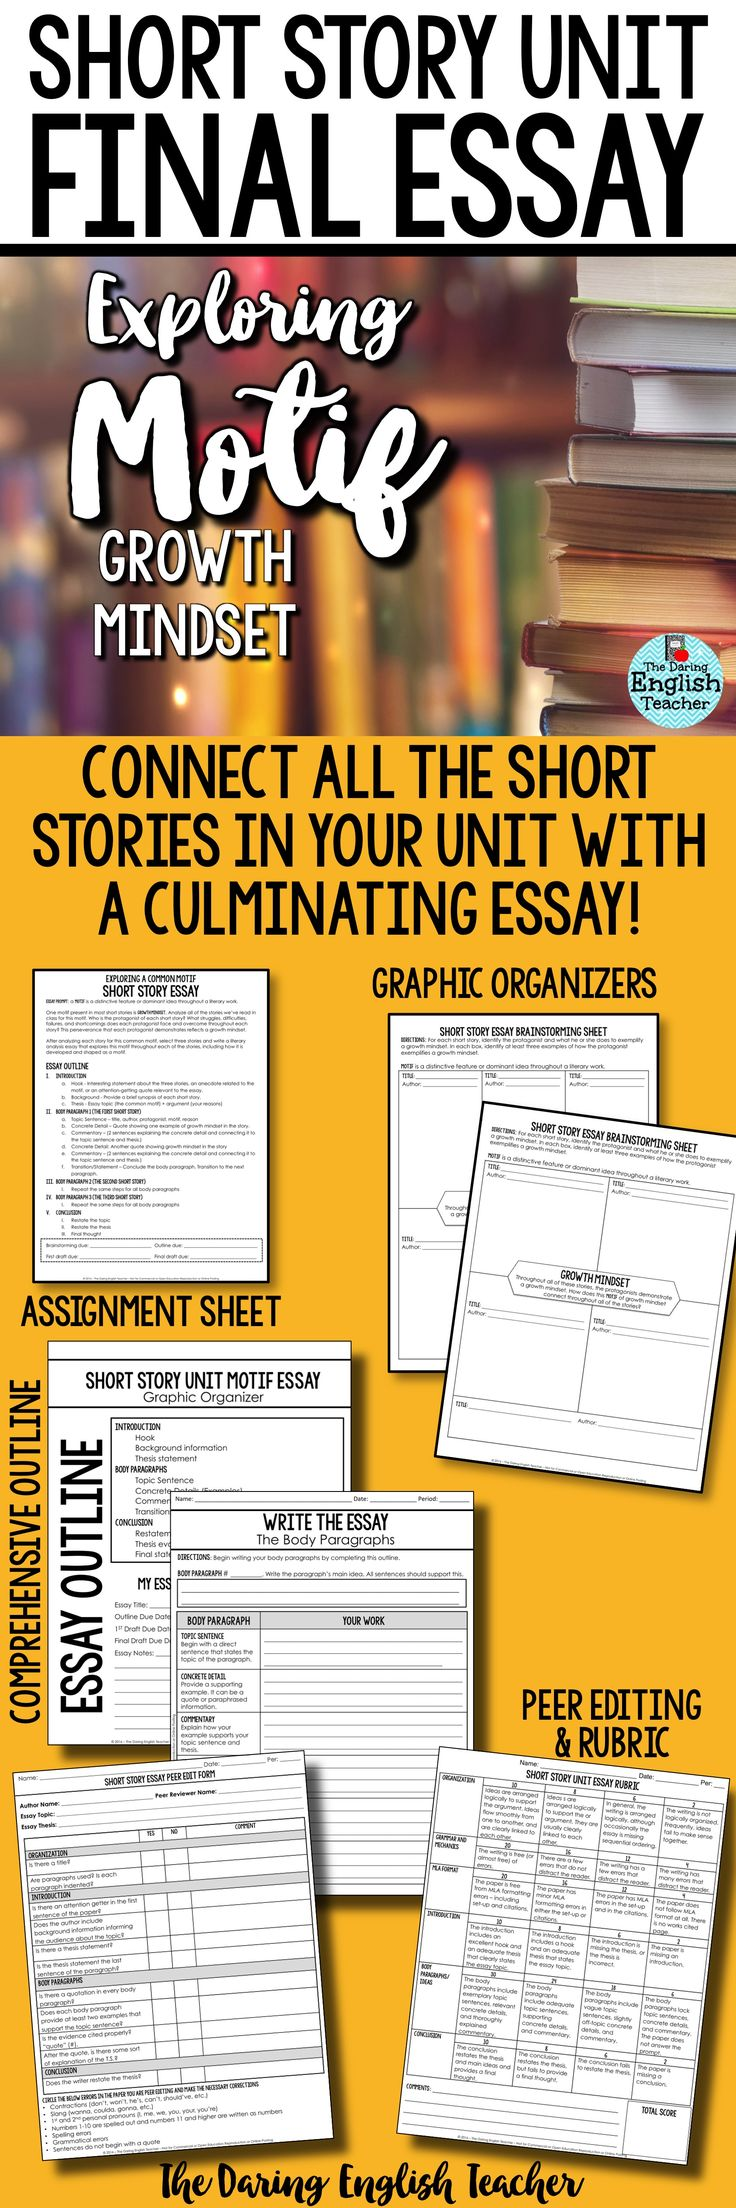 best analytical writing images teaching  short story unit final essay analyzing motif growth mindset teaching